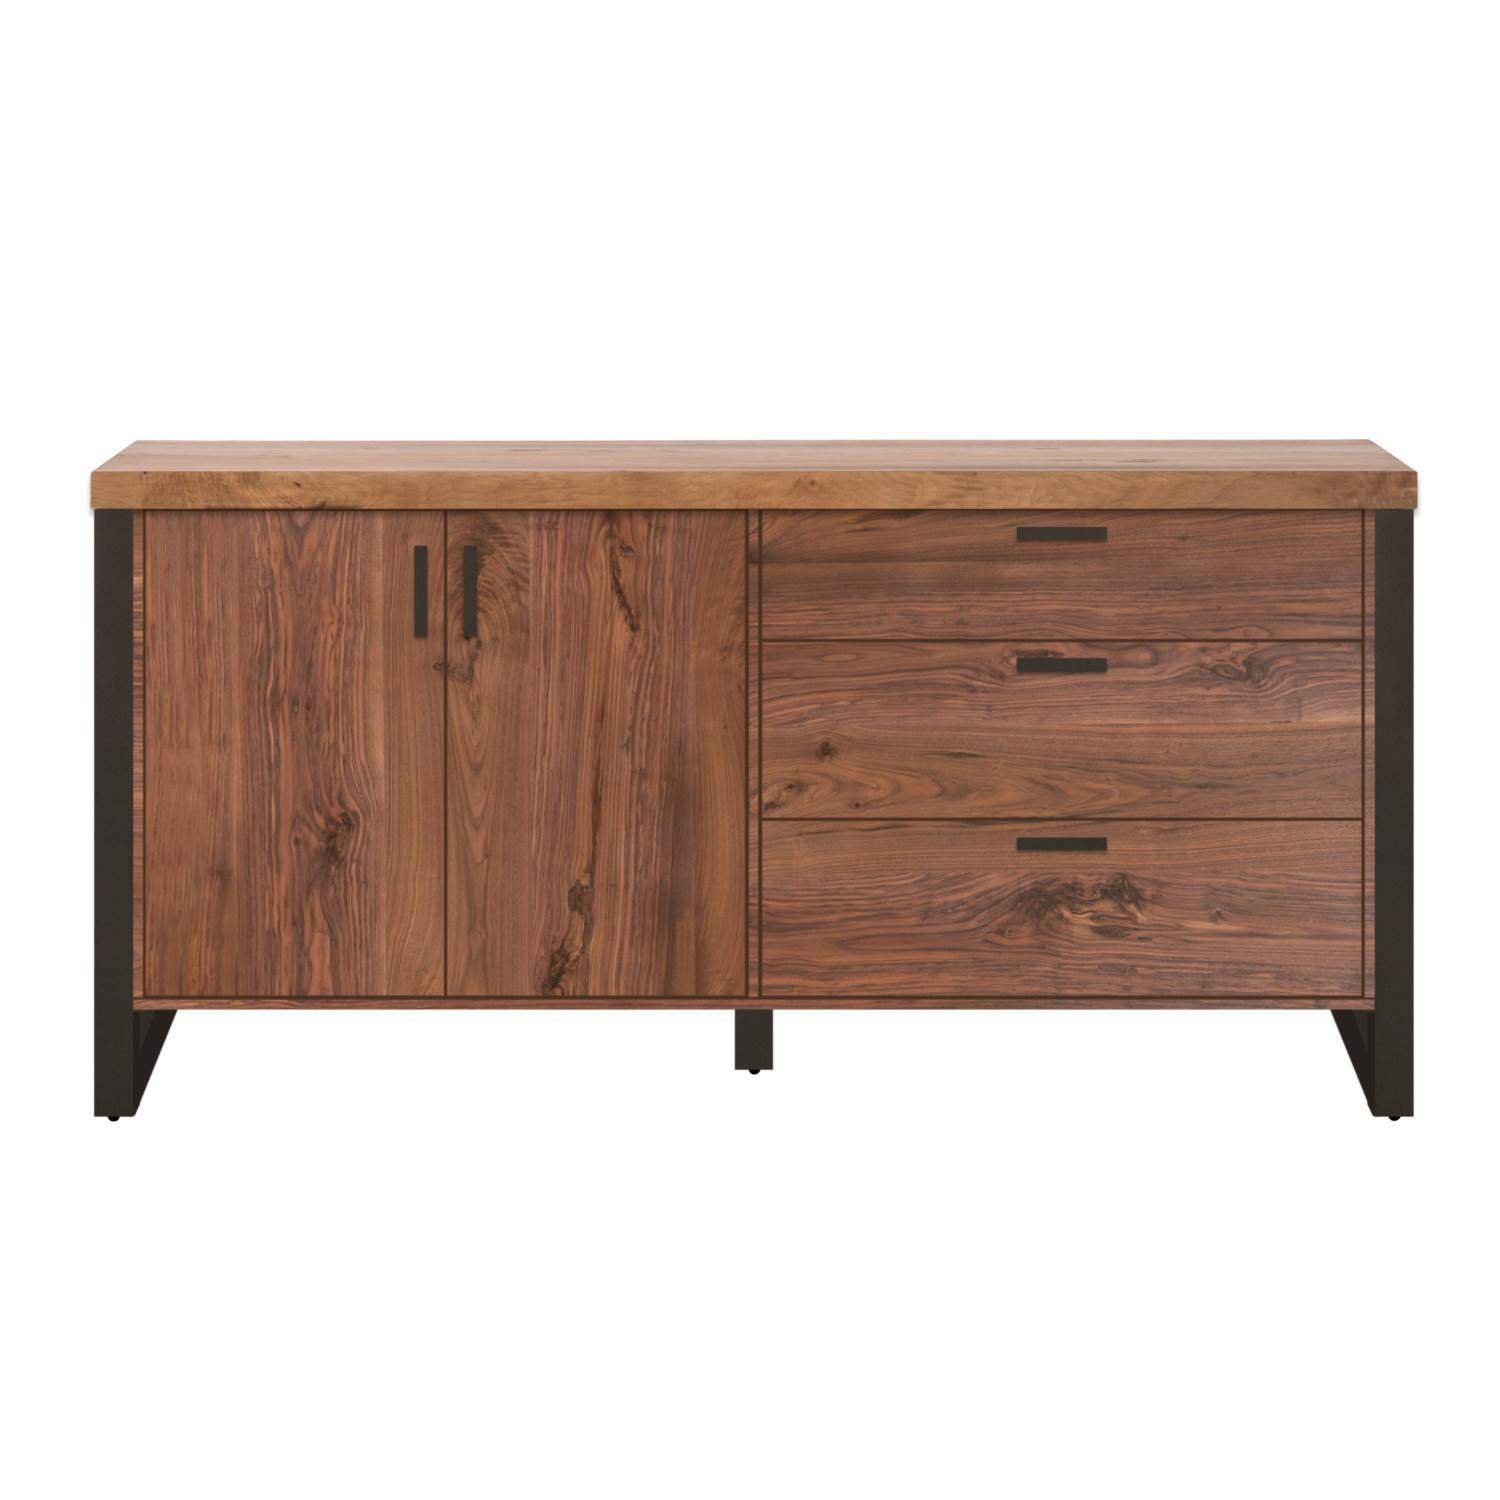 Origin Media Sideboard in Timber Brown